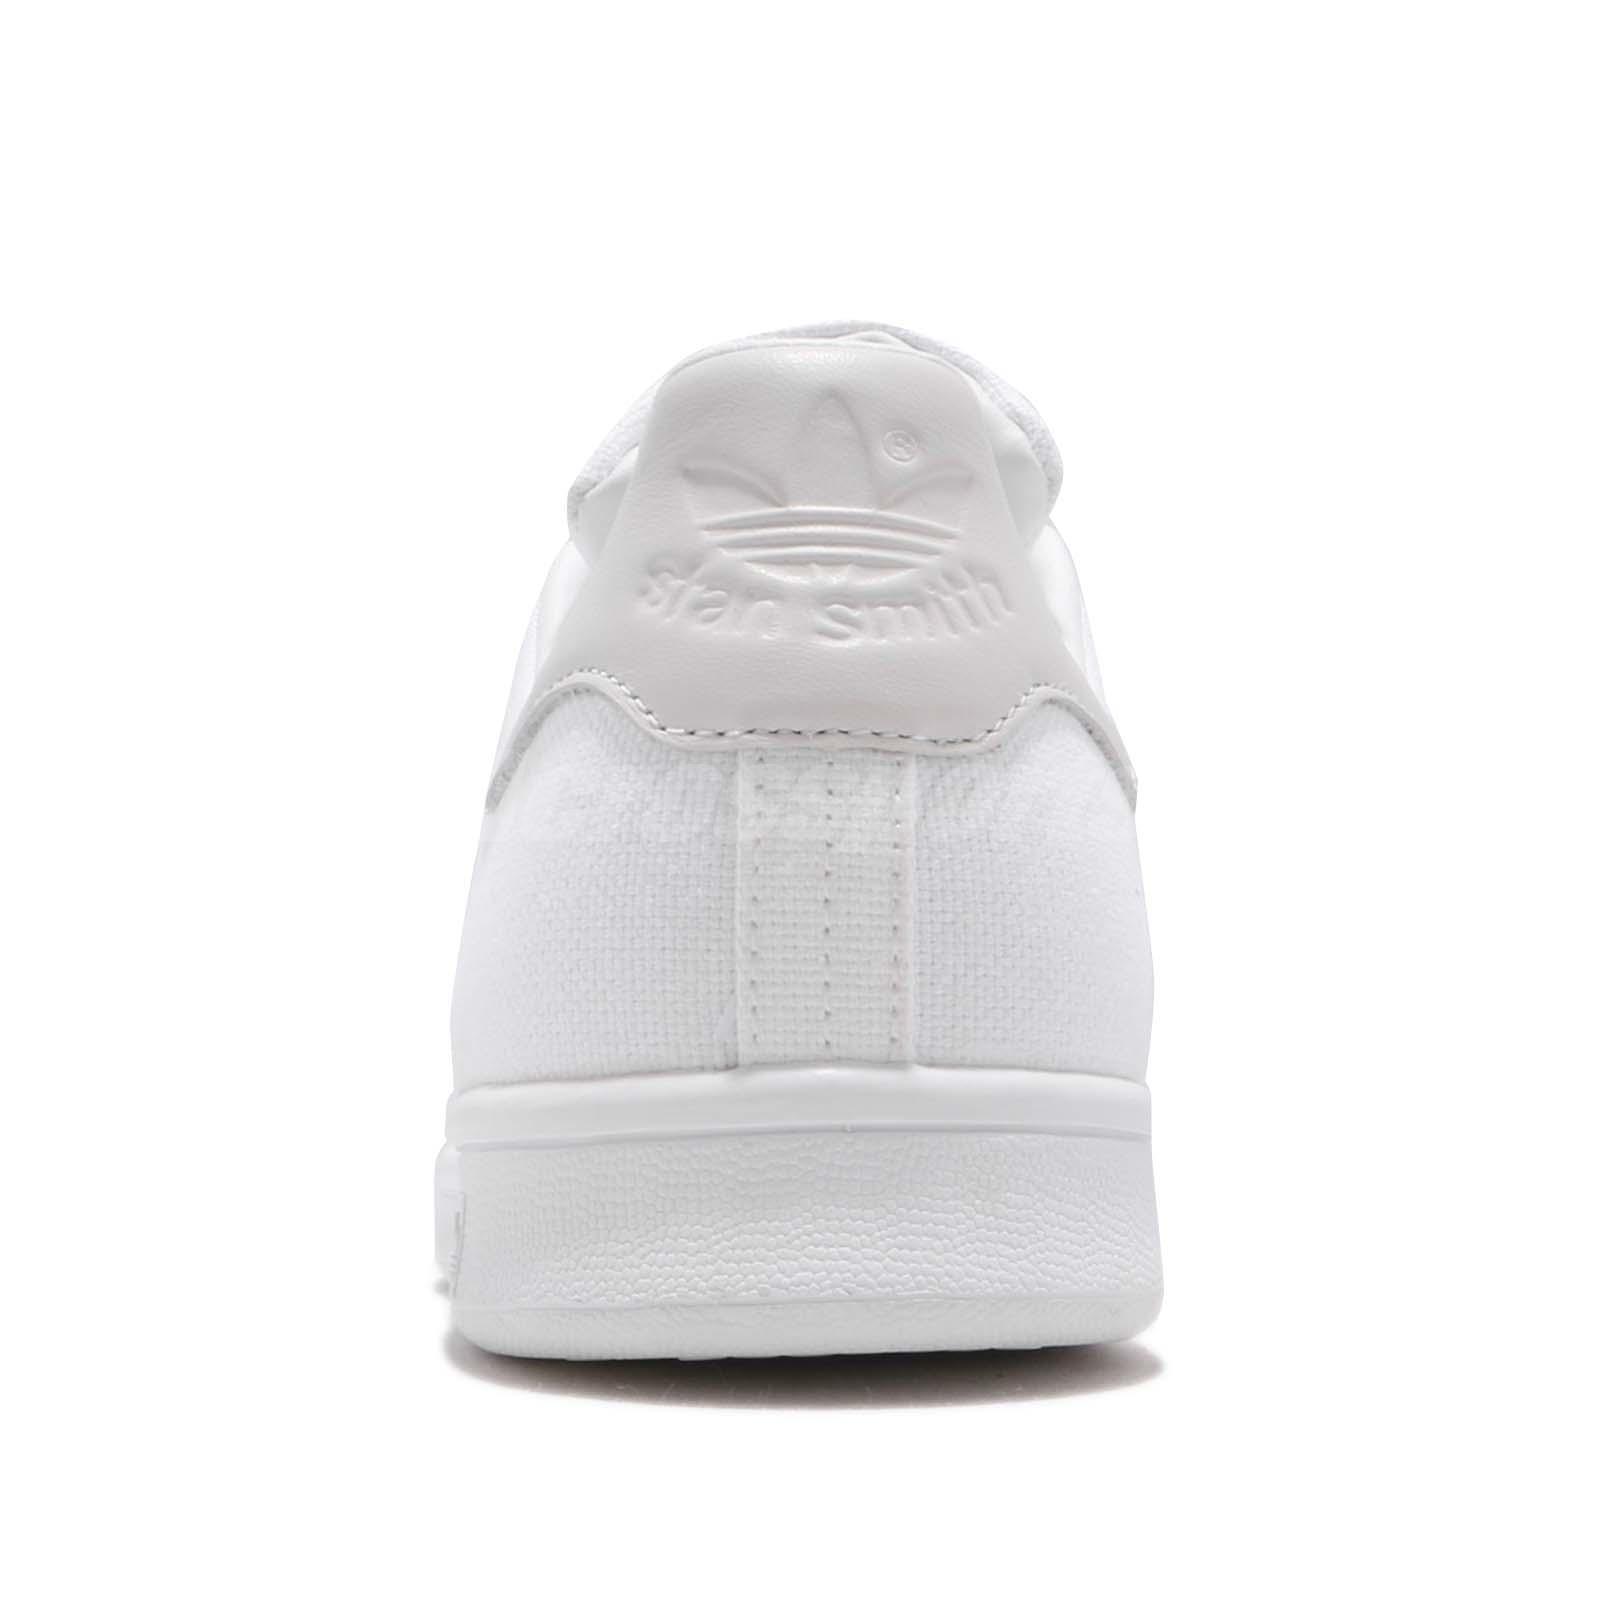 c2f914ed9c4 Details about adidas Originals Stan Smith White Men Running Casual Shoes  Sneakers DA9145